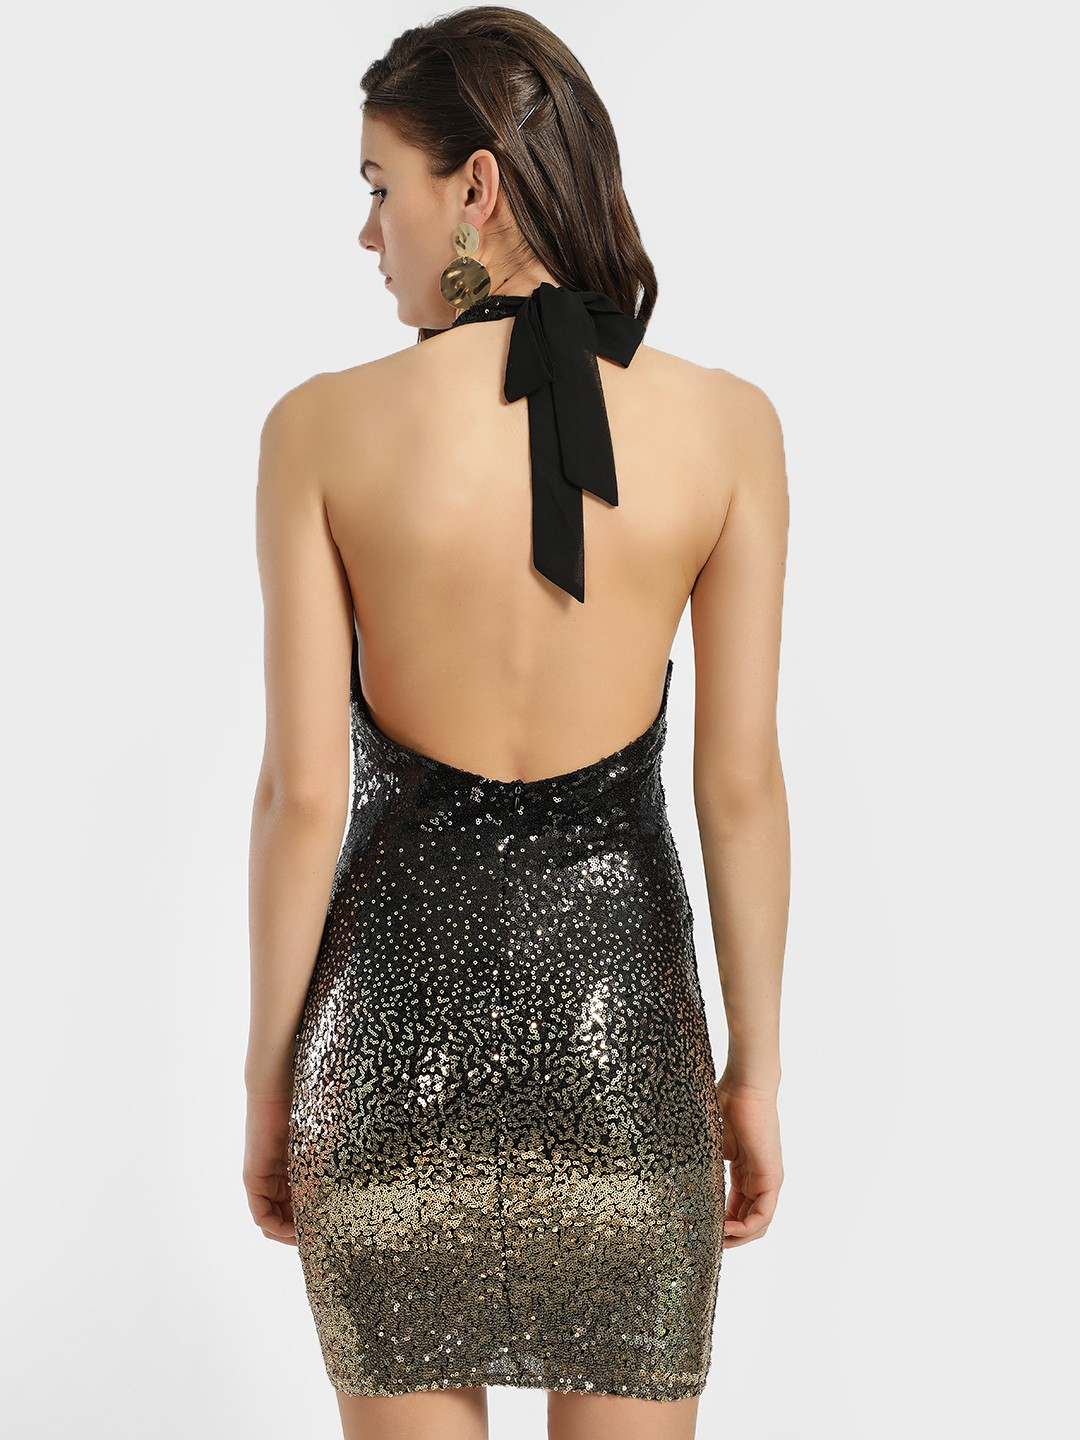 Black and gold sequin ombre bodycon dress like venus